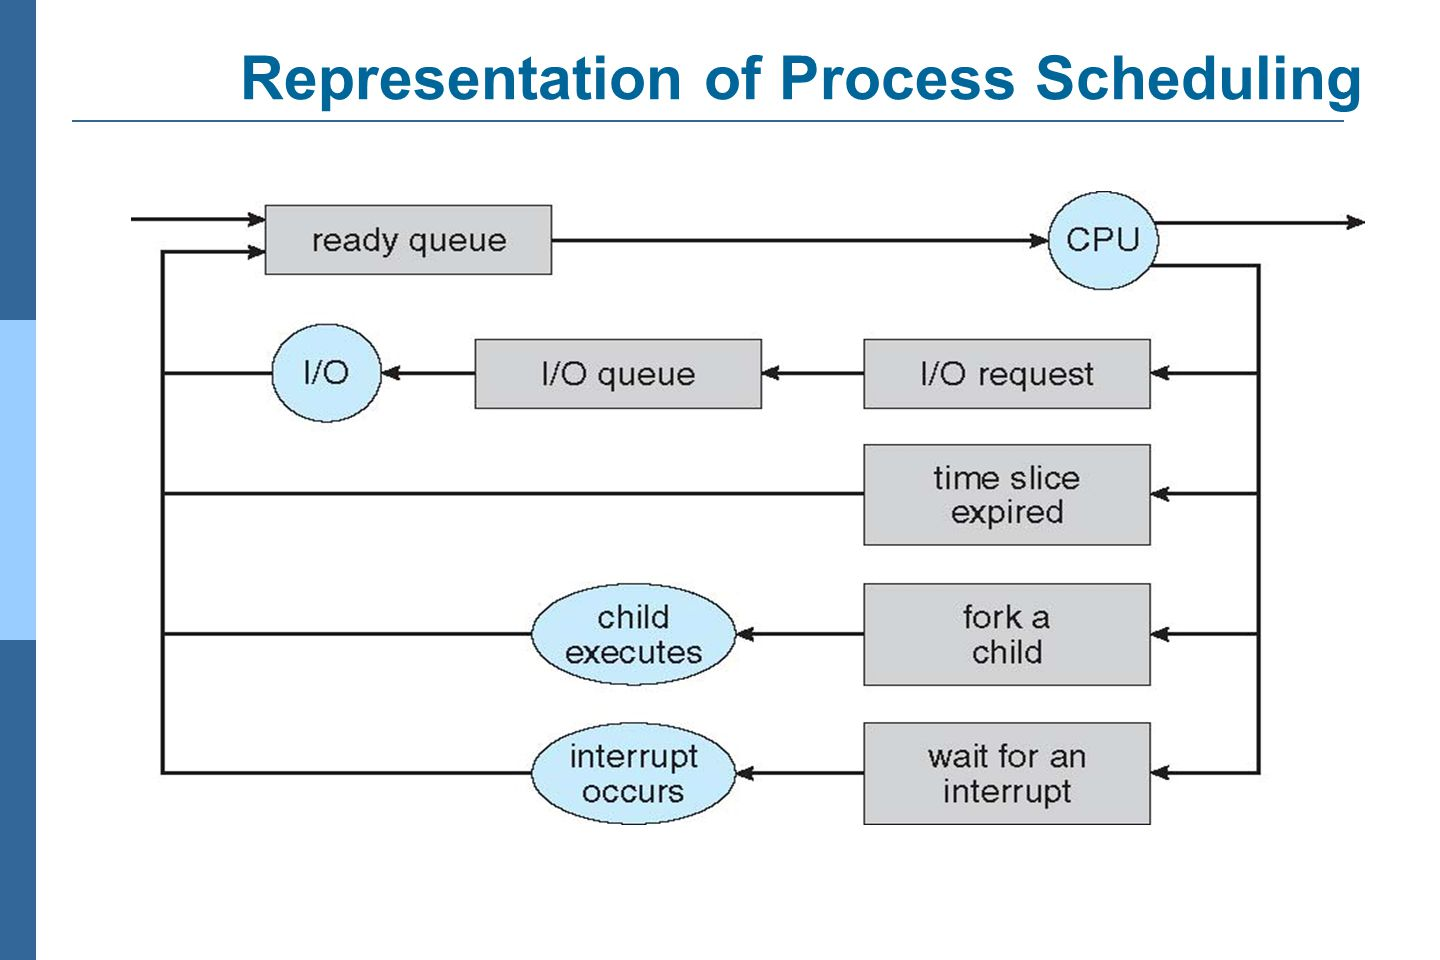 Processes management ppt video online download 17 representation of process scheduling ccuart Image collections